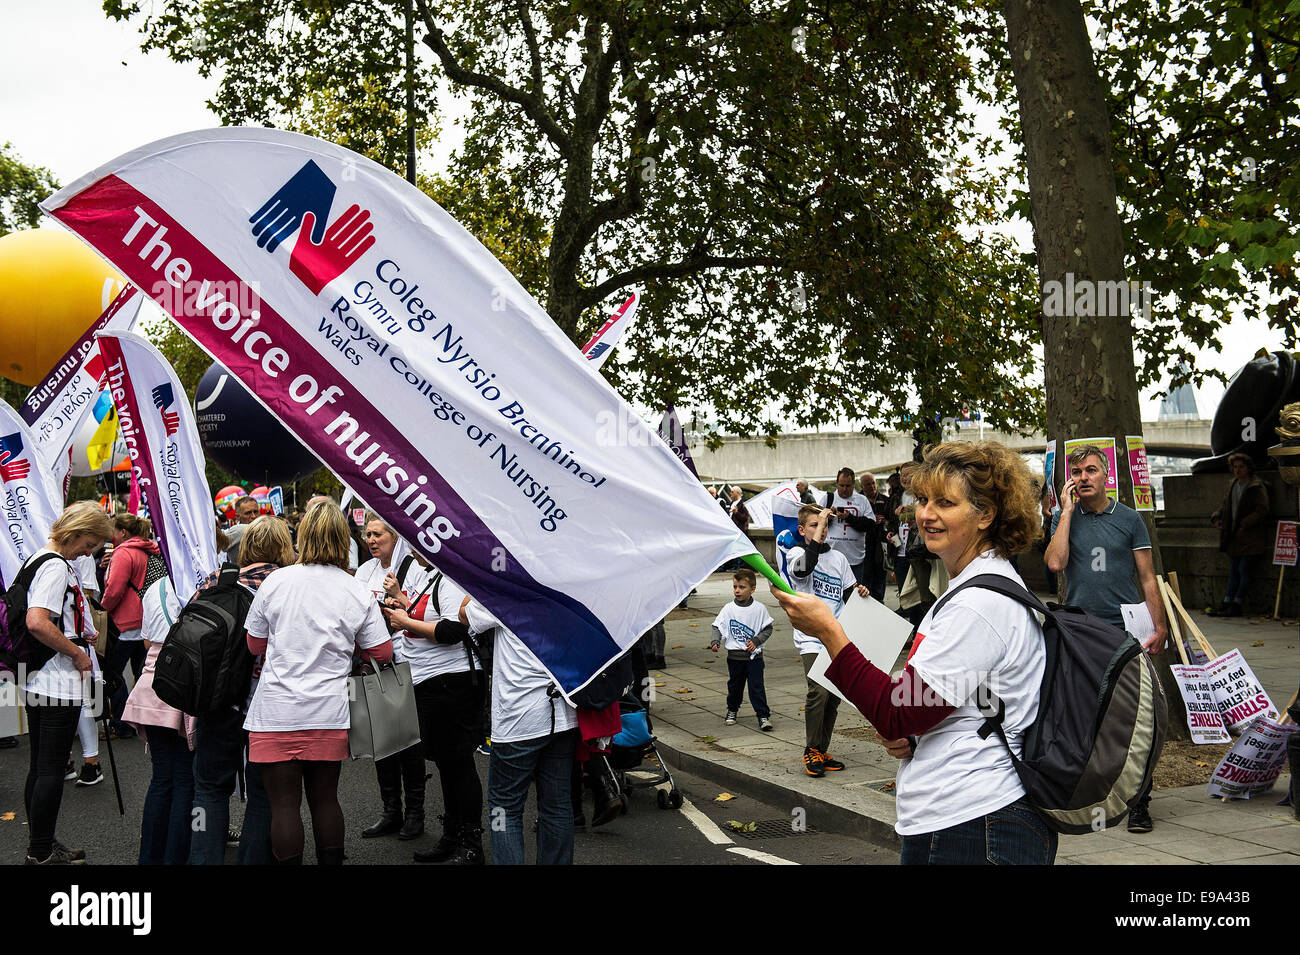 A TUC national demonstration in Central London.  A member of the Royal College of Nursing protests. - Stock Image